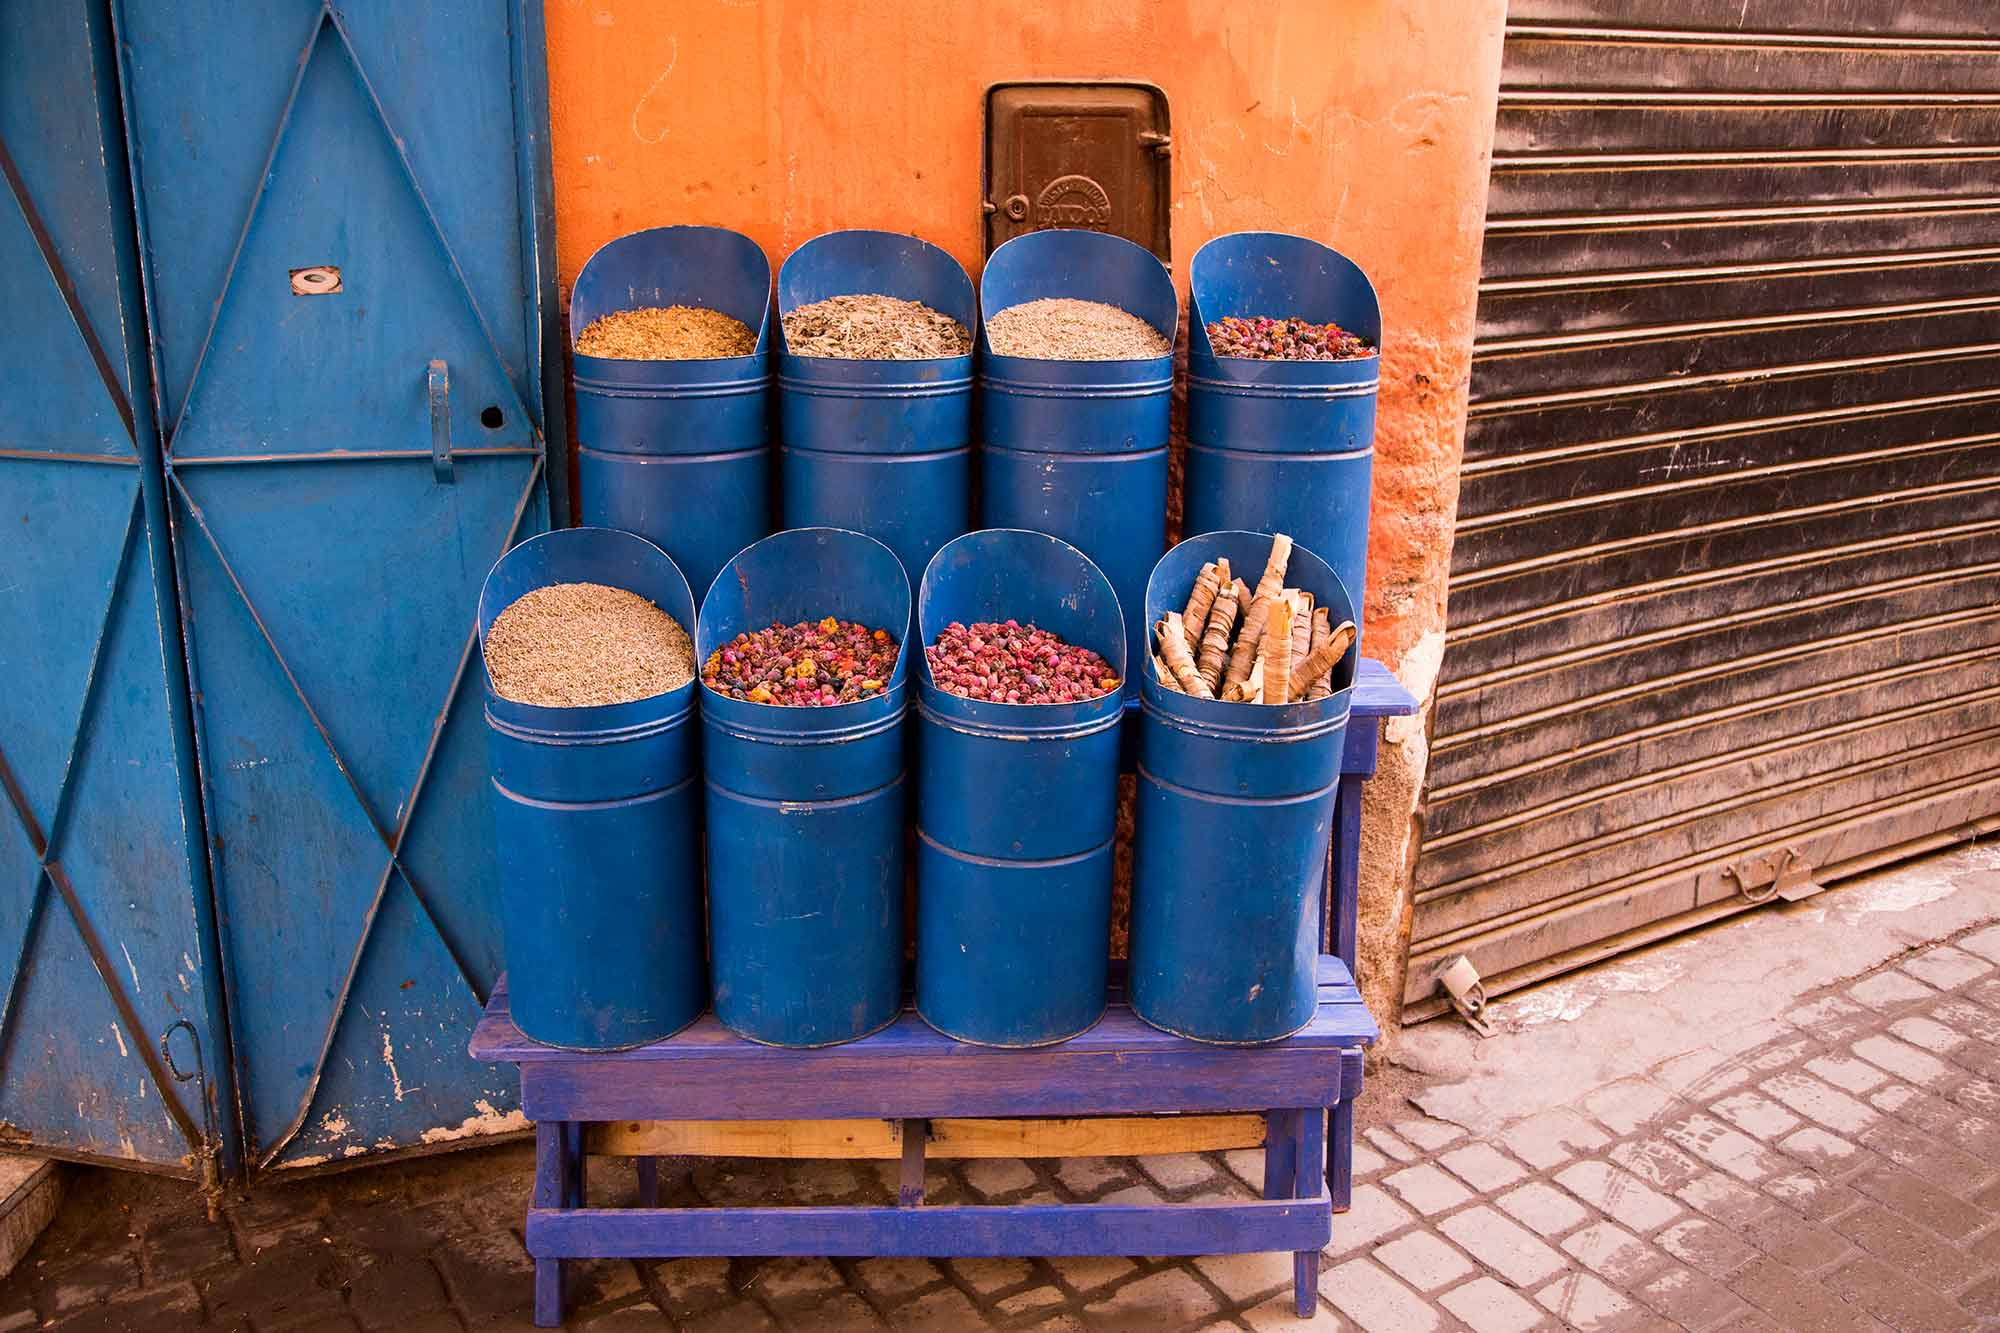 Herbs and spices can be found at every market in Morocco. © ULLI MAIER & NISA MAIER